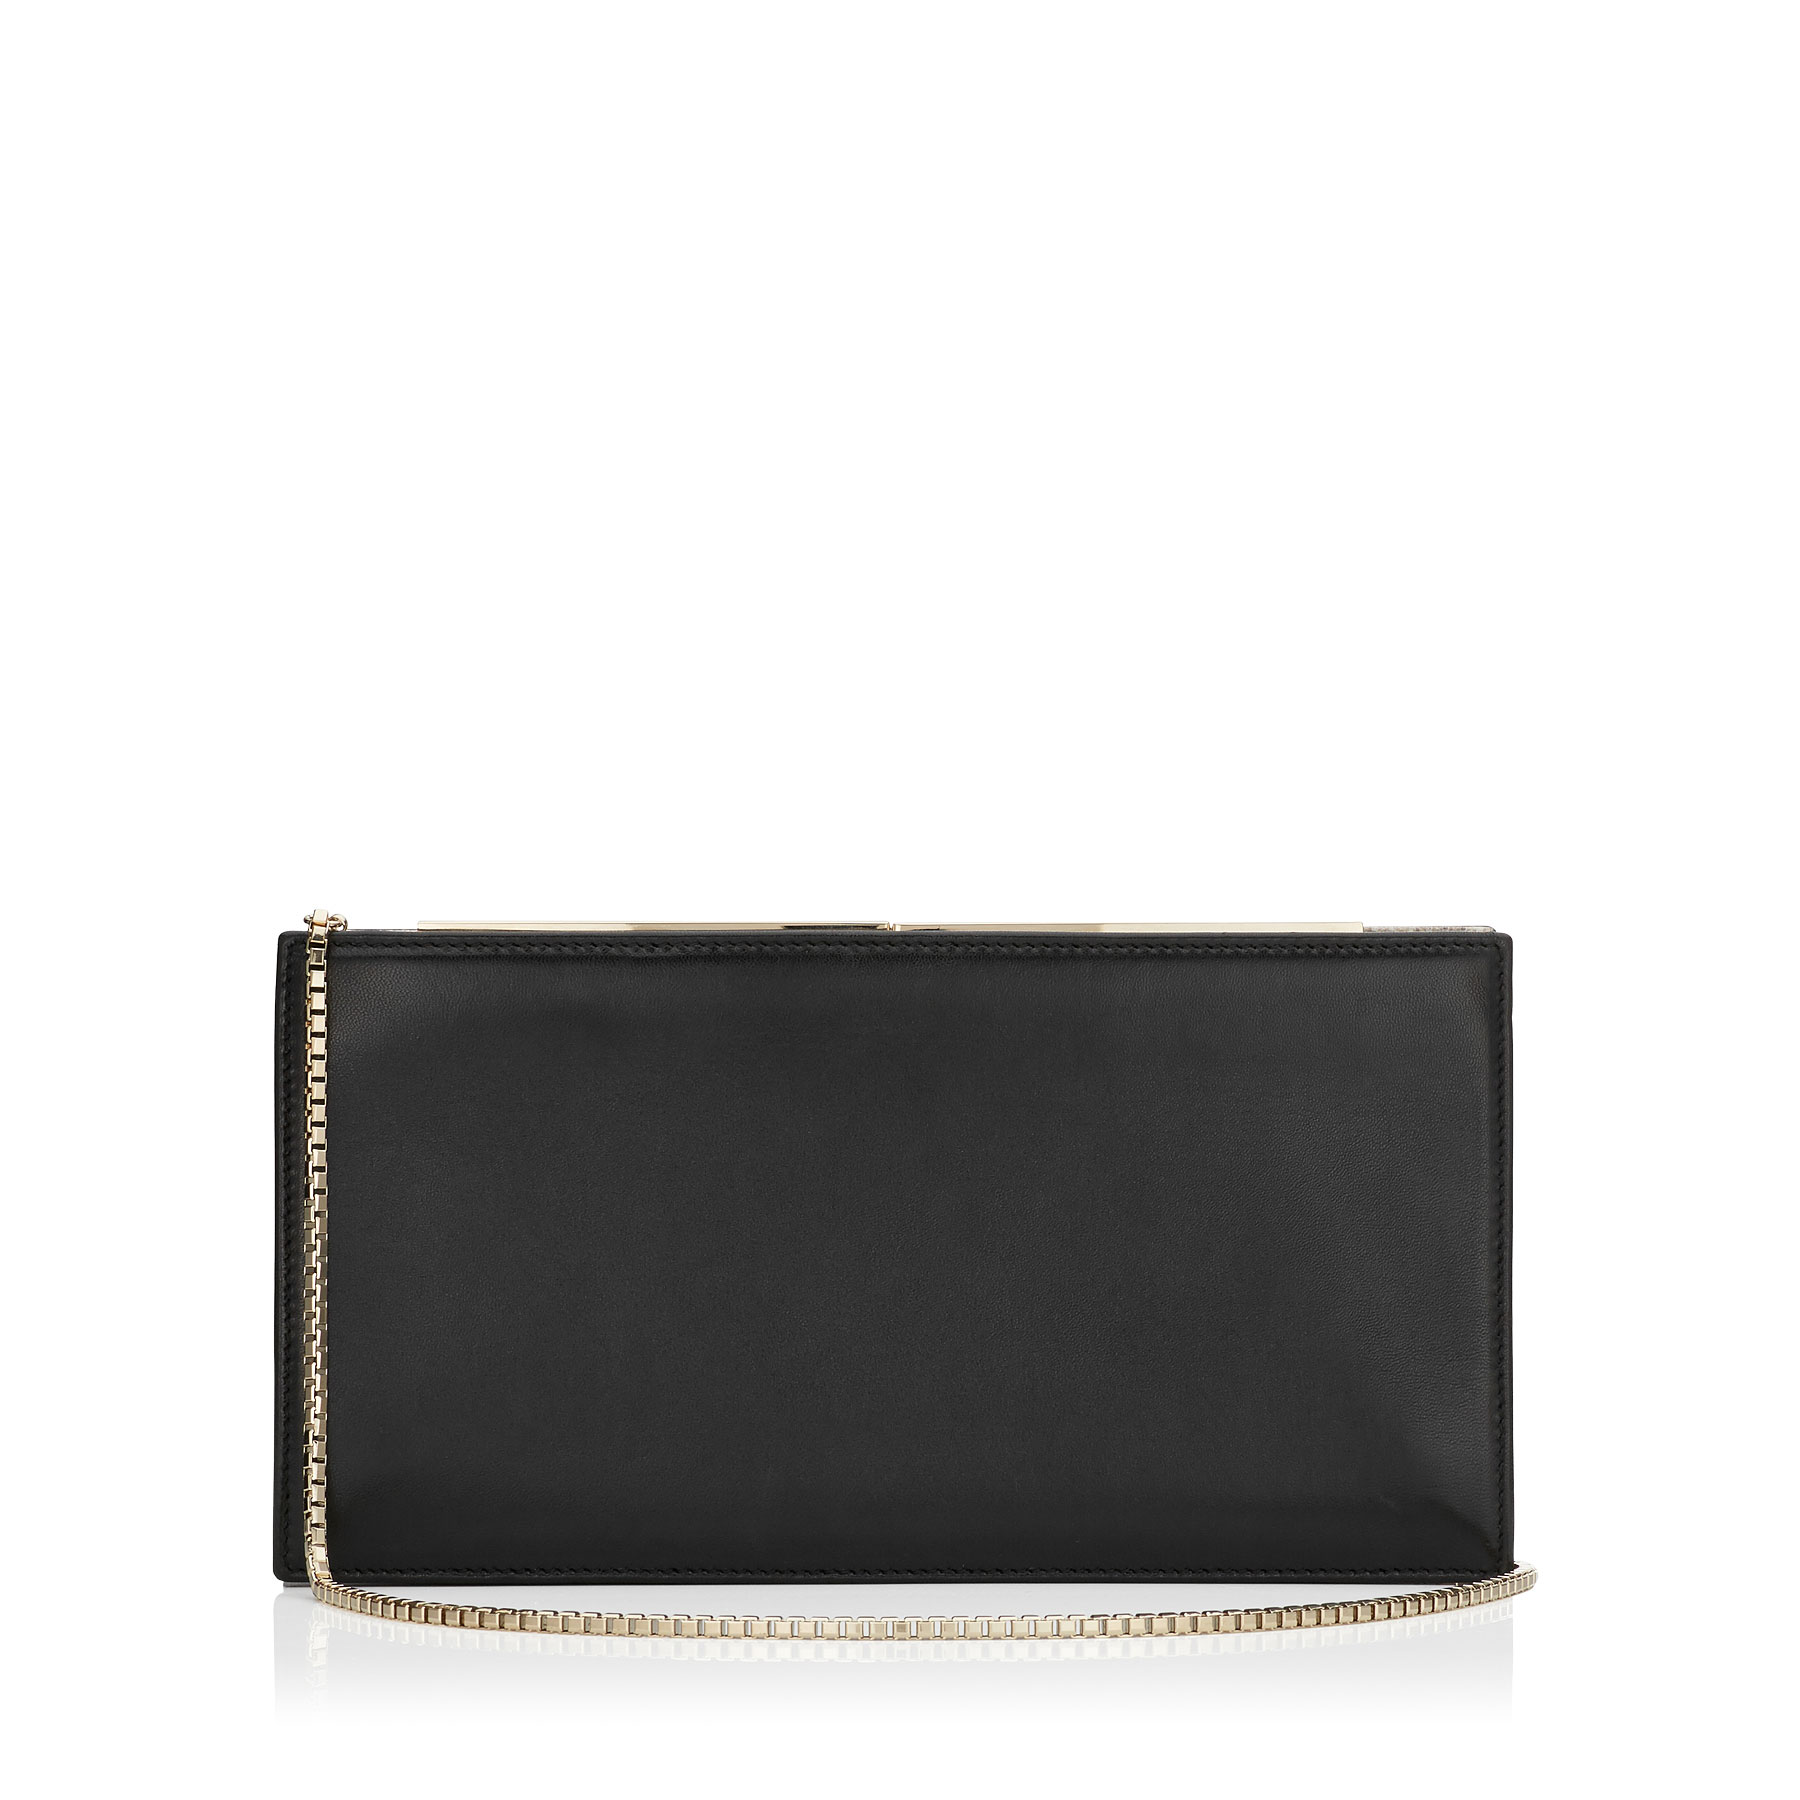 TUX Black Glossy Nappa and Natural Karung Clutch Bag